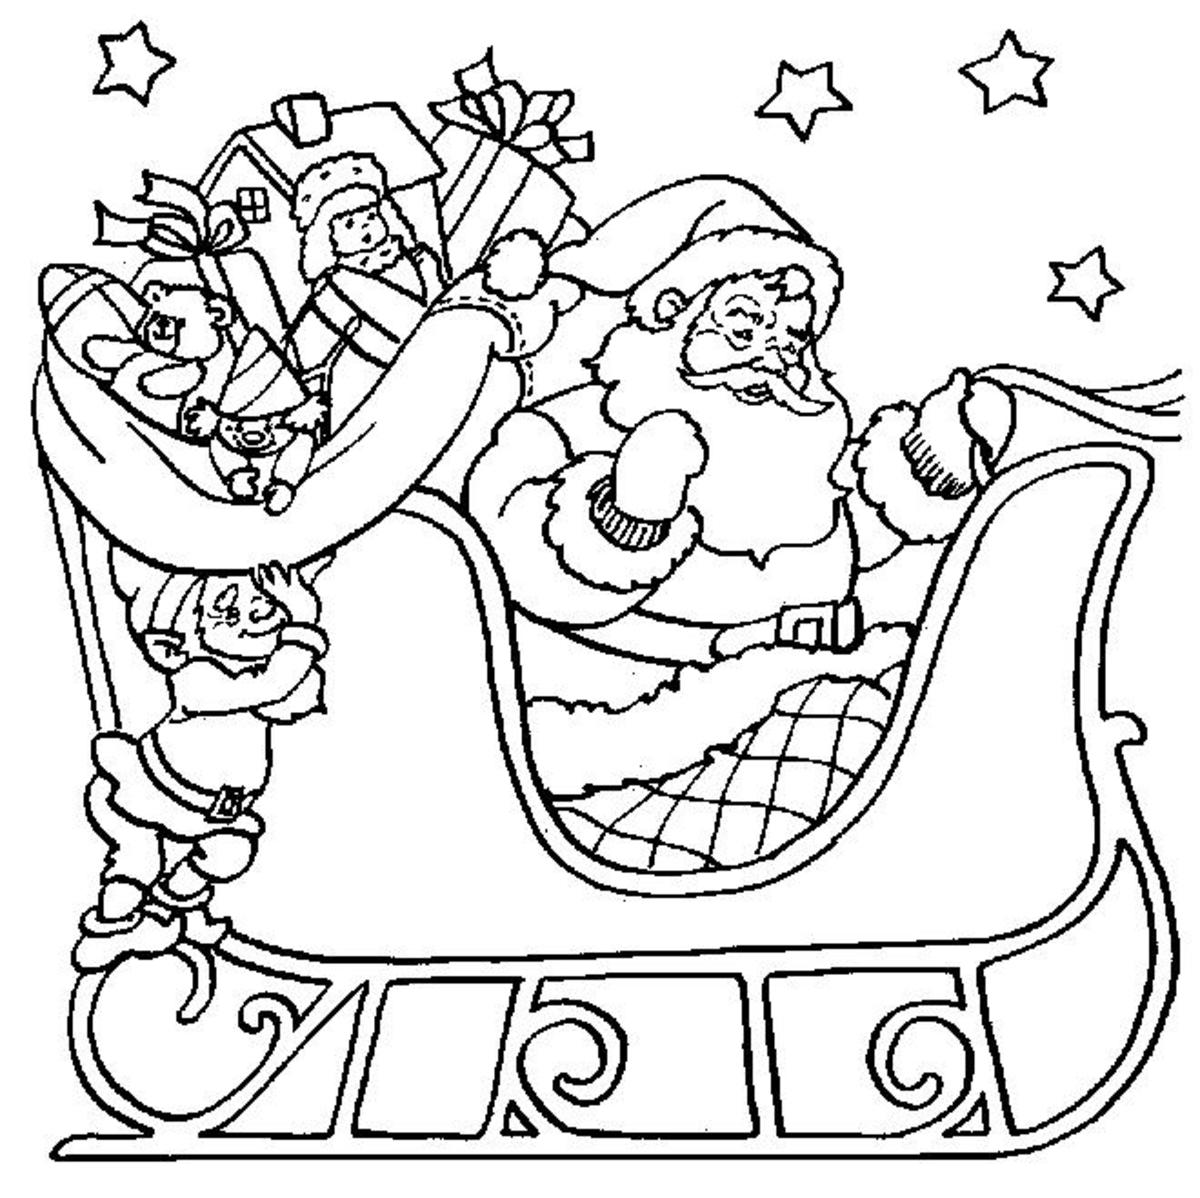 Santa Claus Coloring Pages Free Colouring Pictures to Print - sleigh time